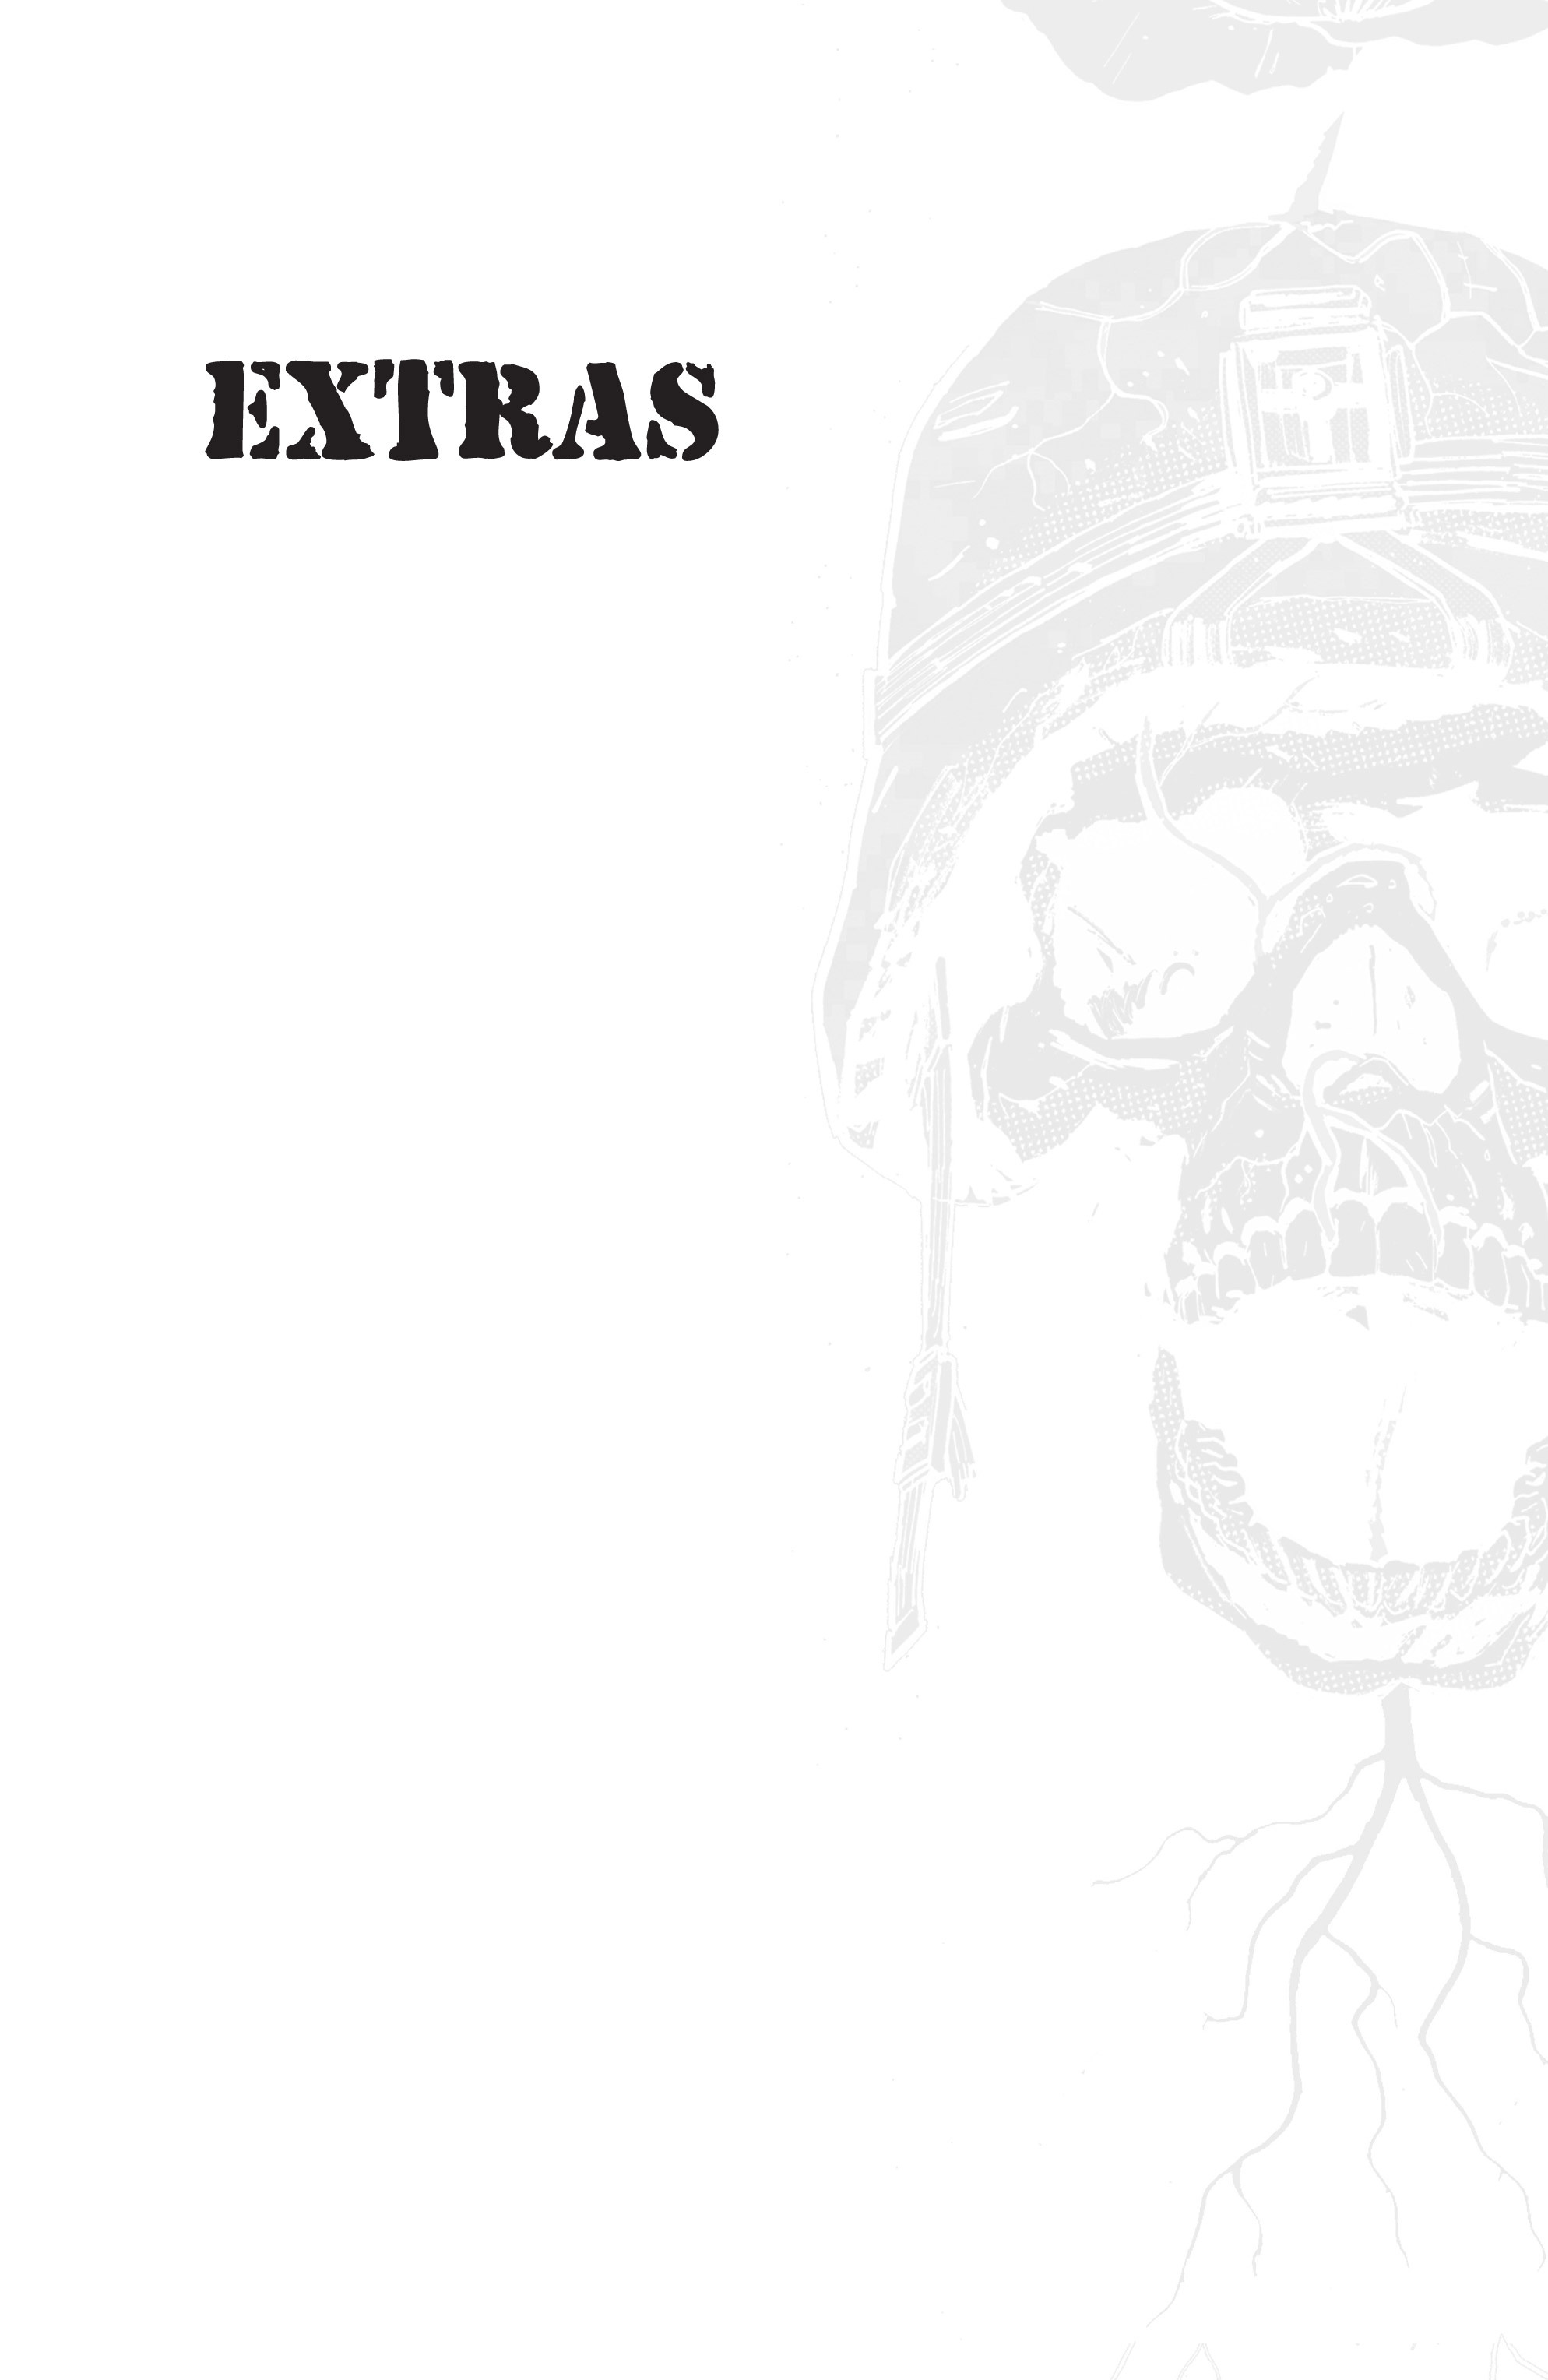 Read online Graveyard of Empires comic -  Issue # TPB - 132